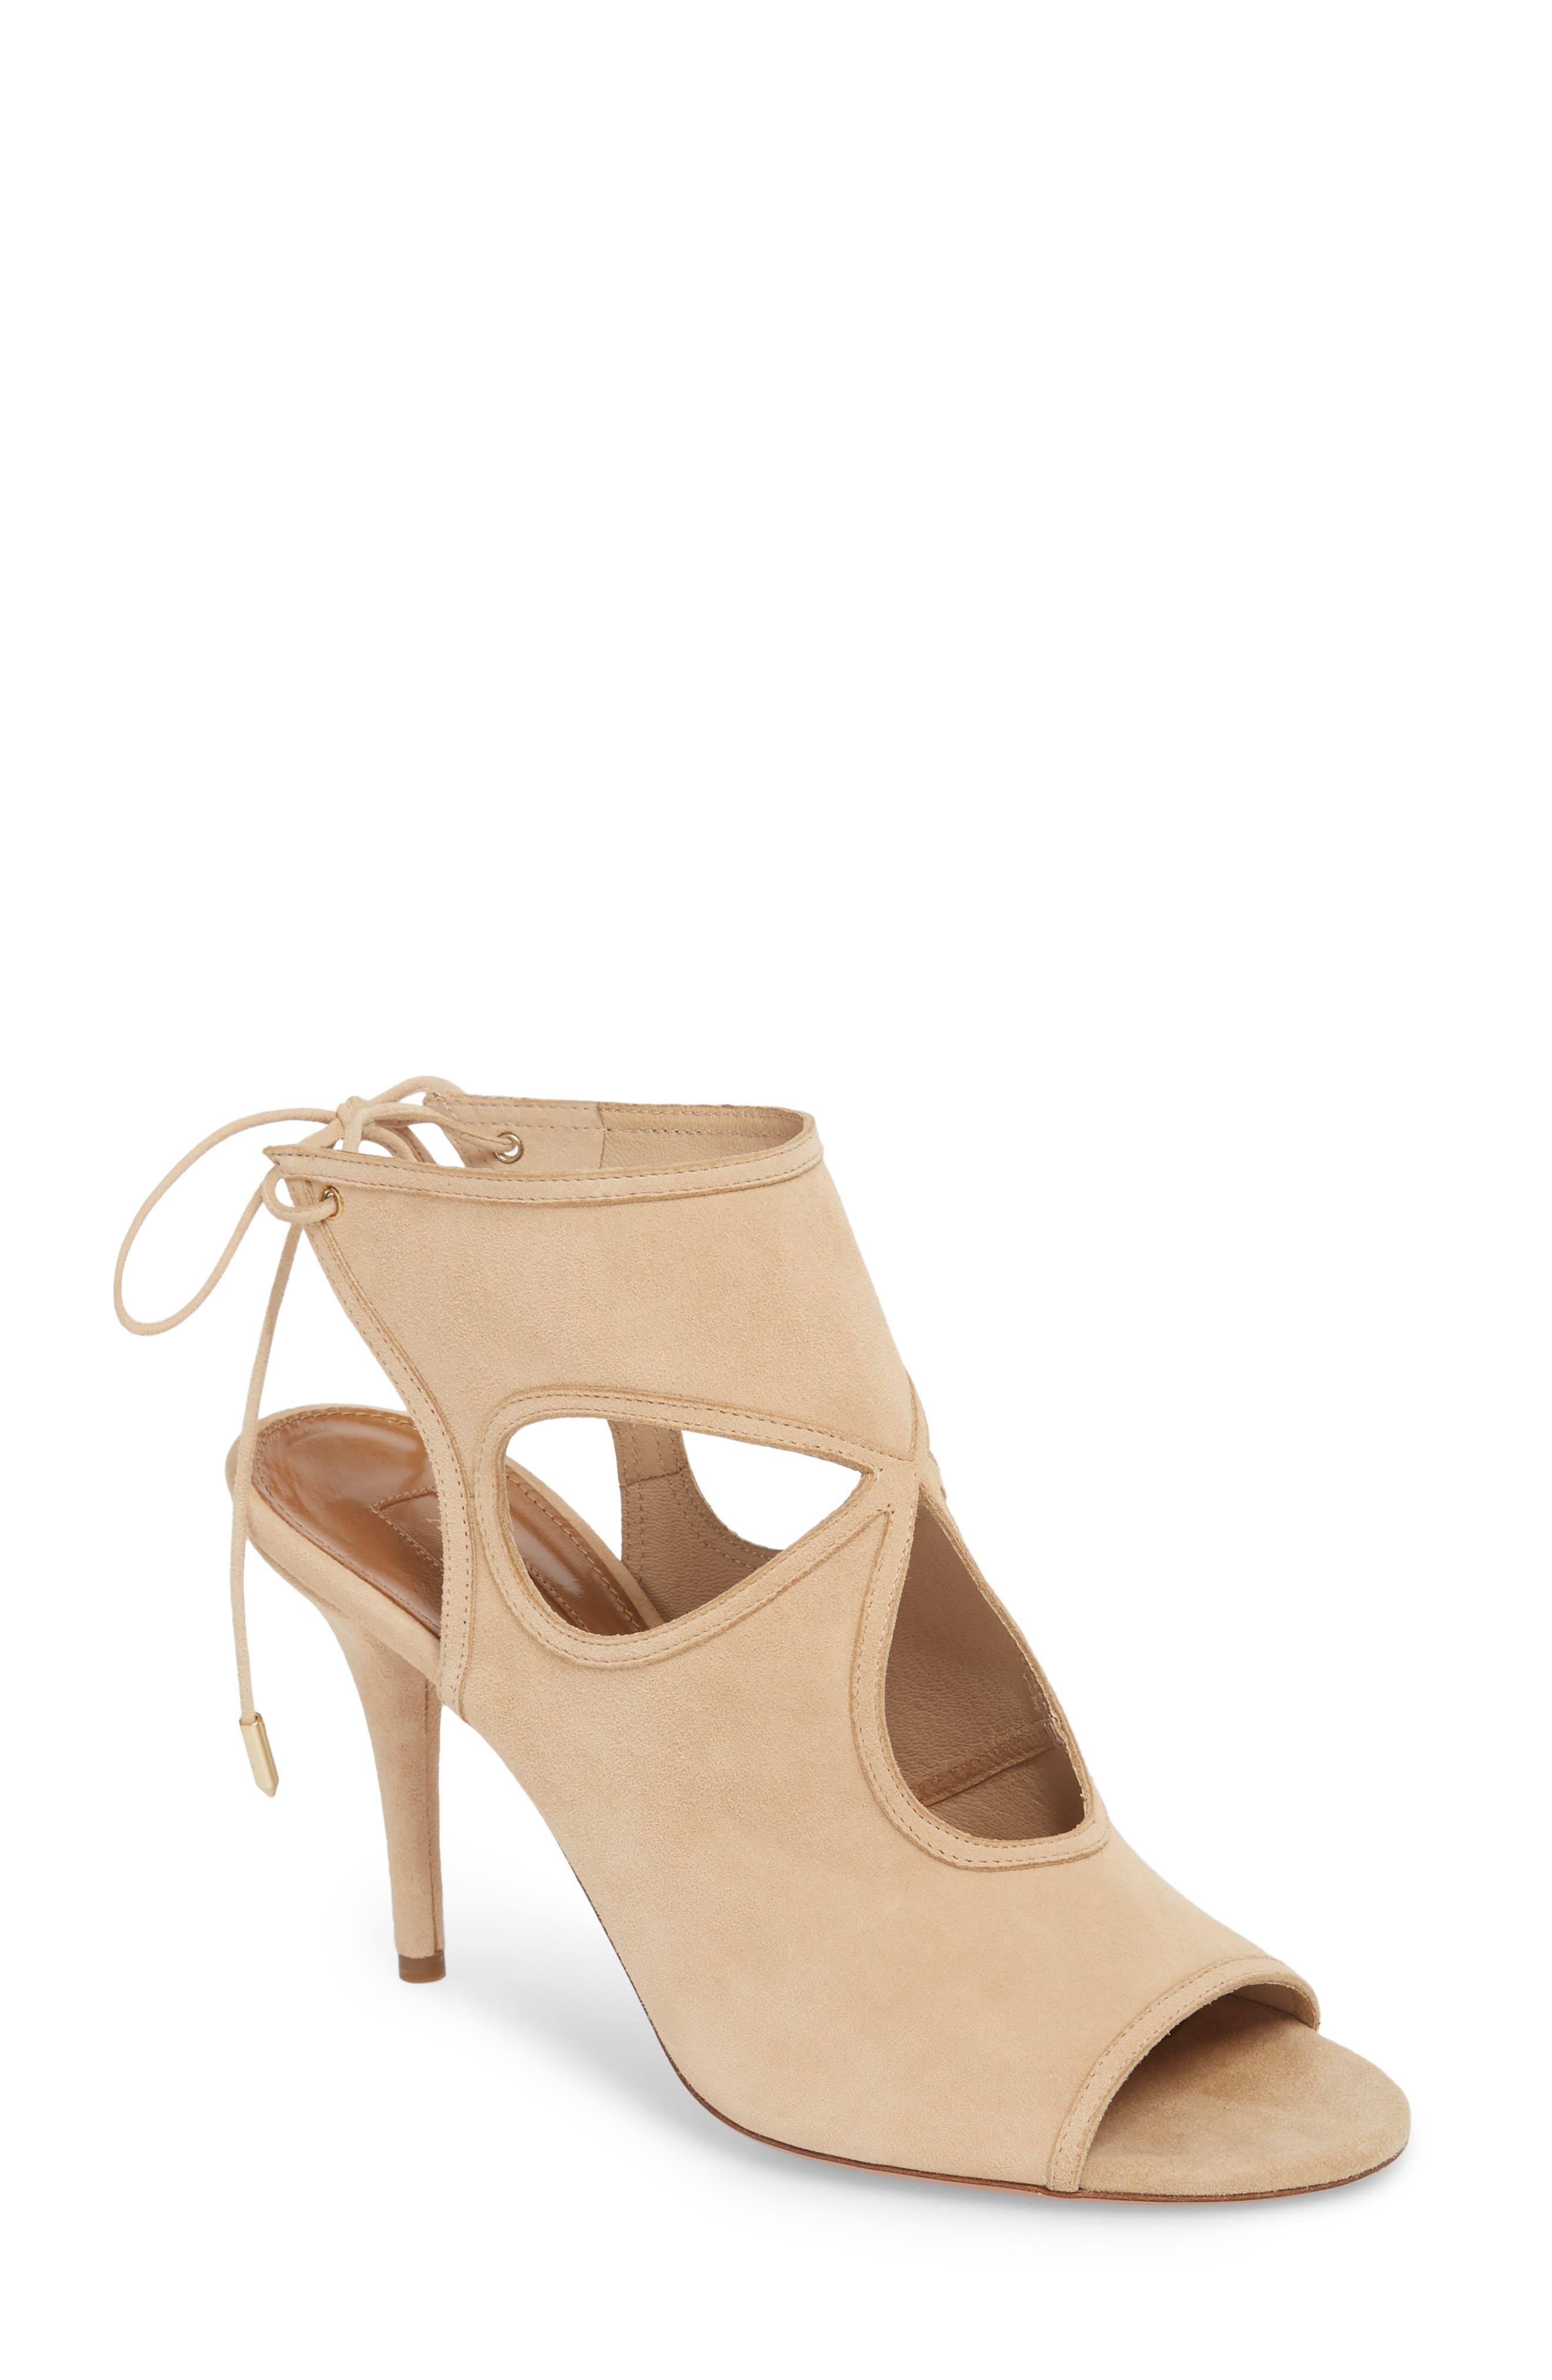 Sexy Thing Sandal,                         Main,                         color, Nude